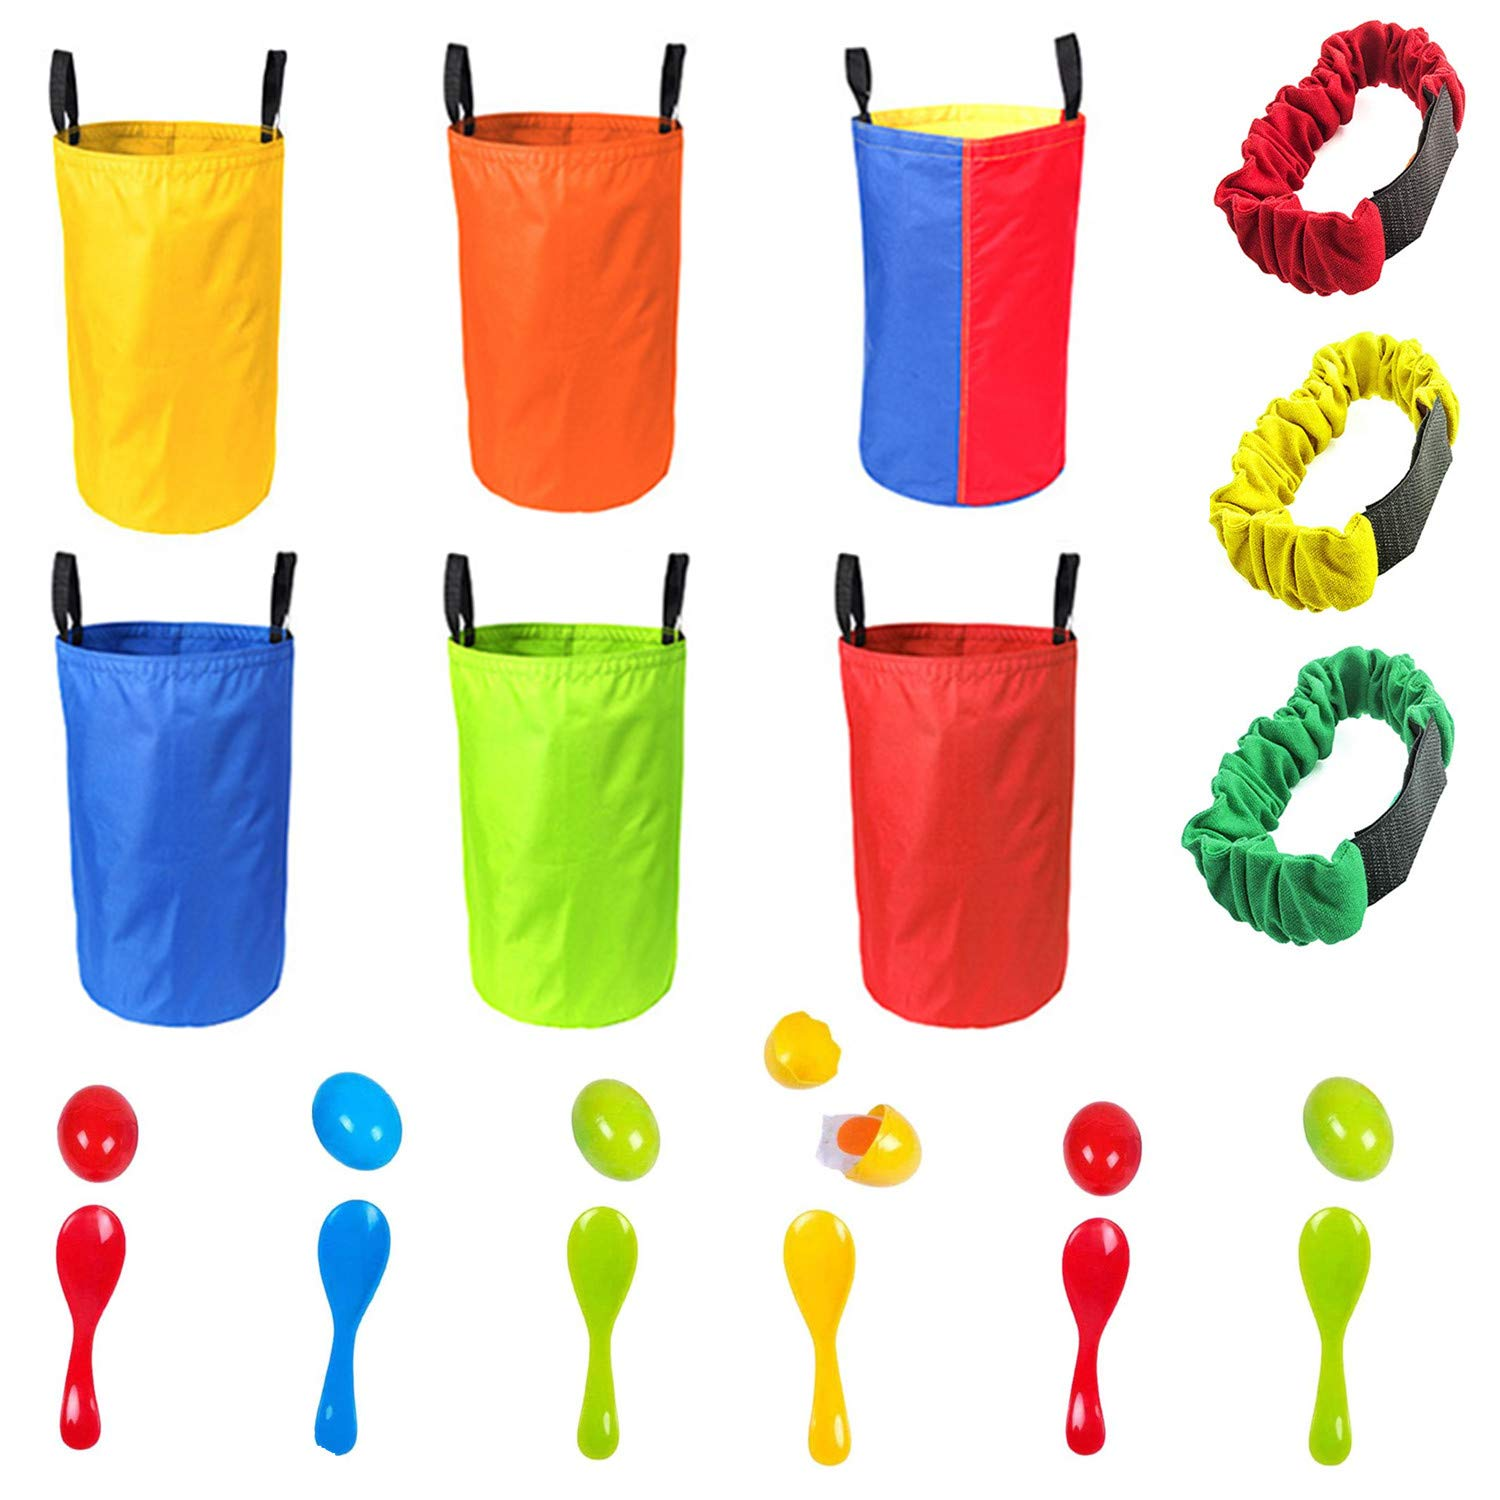 Game Set For Outdoors 6 Sack Race Bags, 6 Spoons and Eggs and 3 Adjustable Leg Bands Party Games For All Ages Kids in School or Family Parties